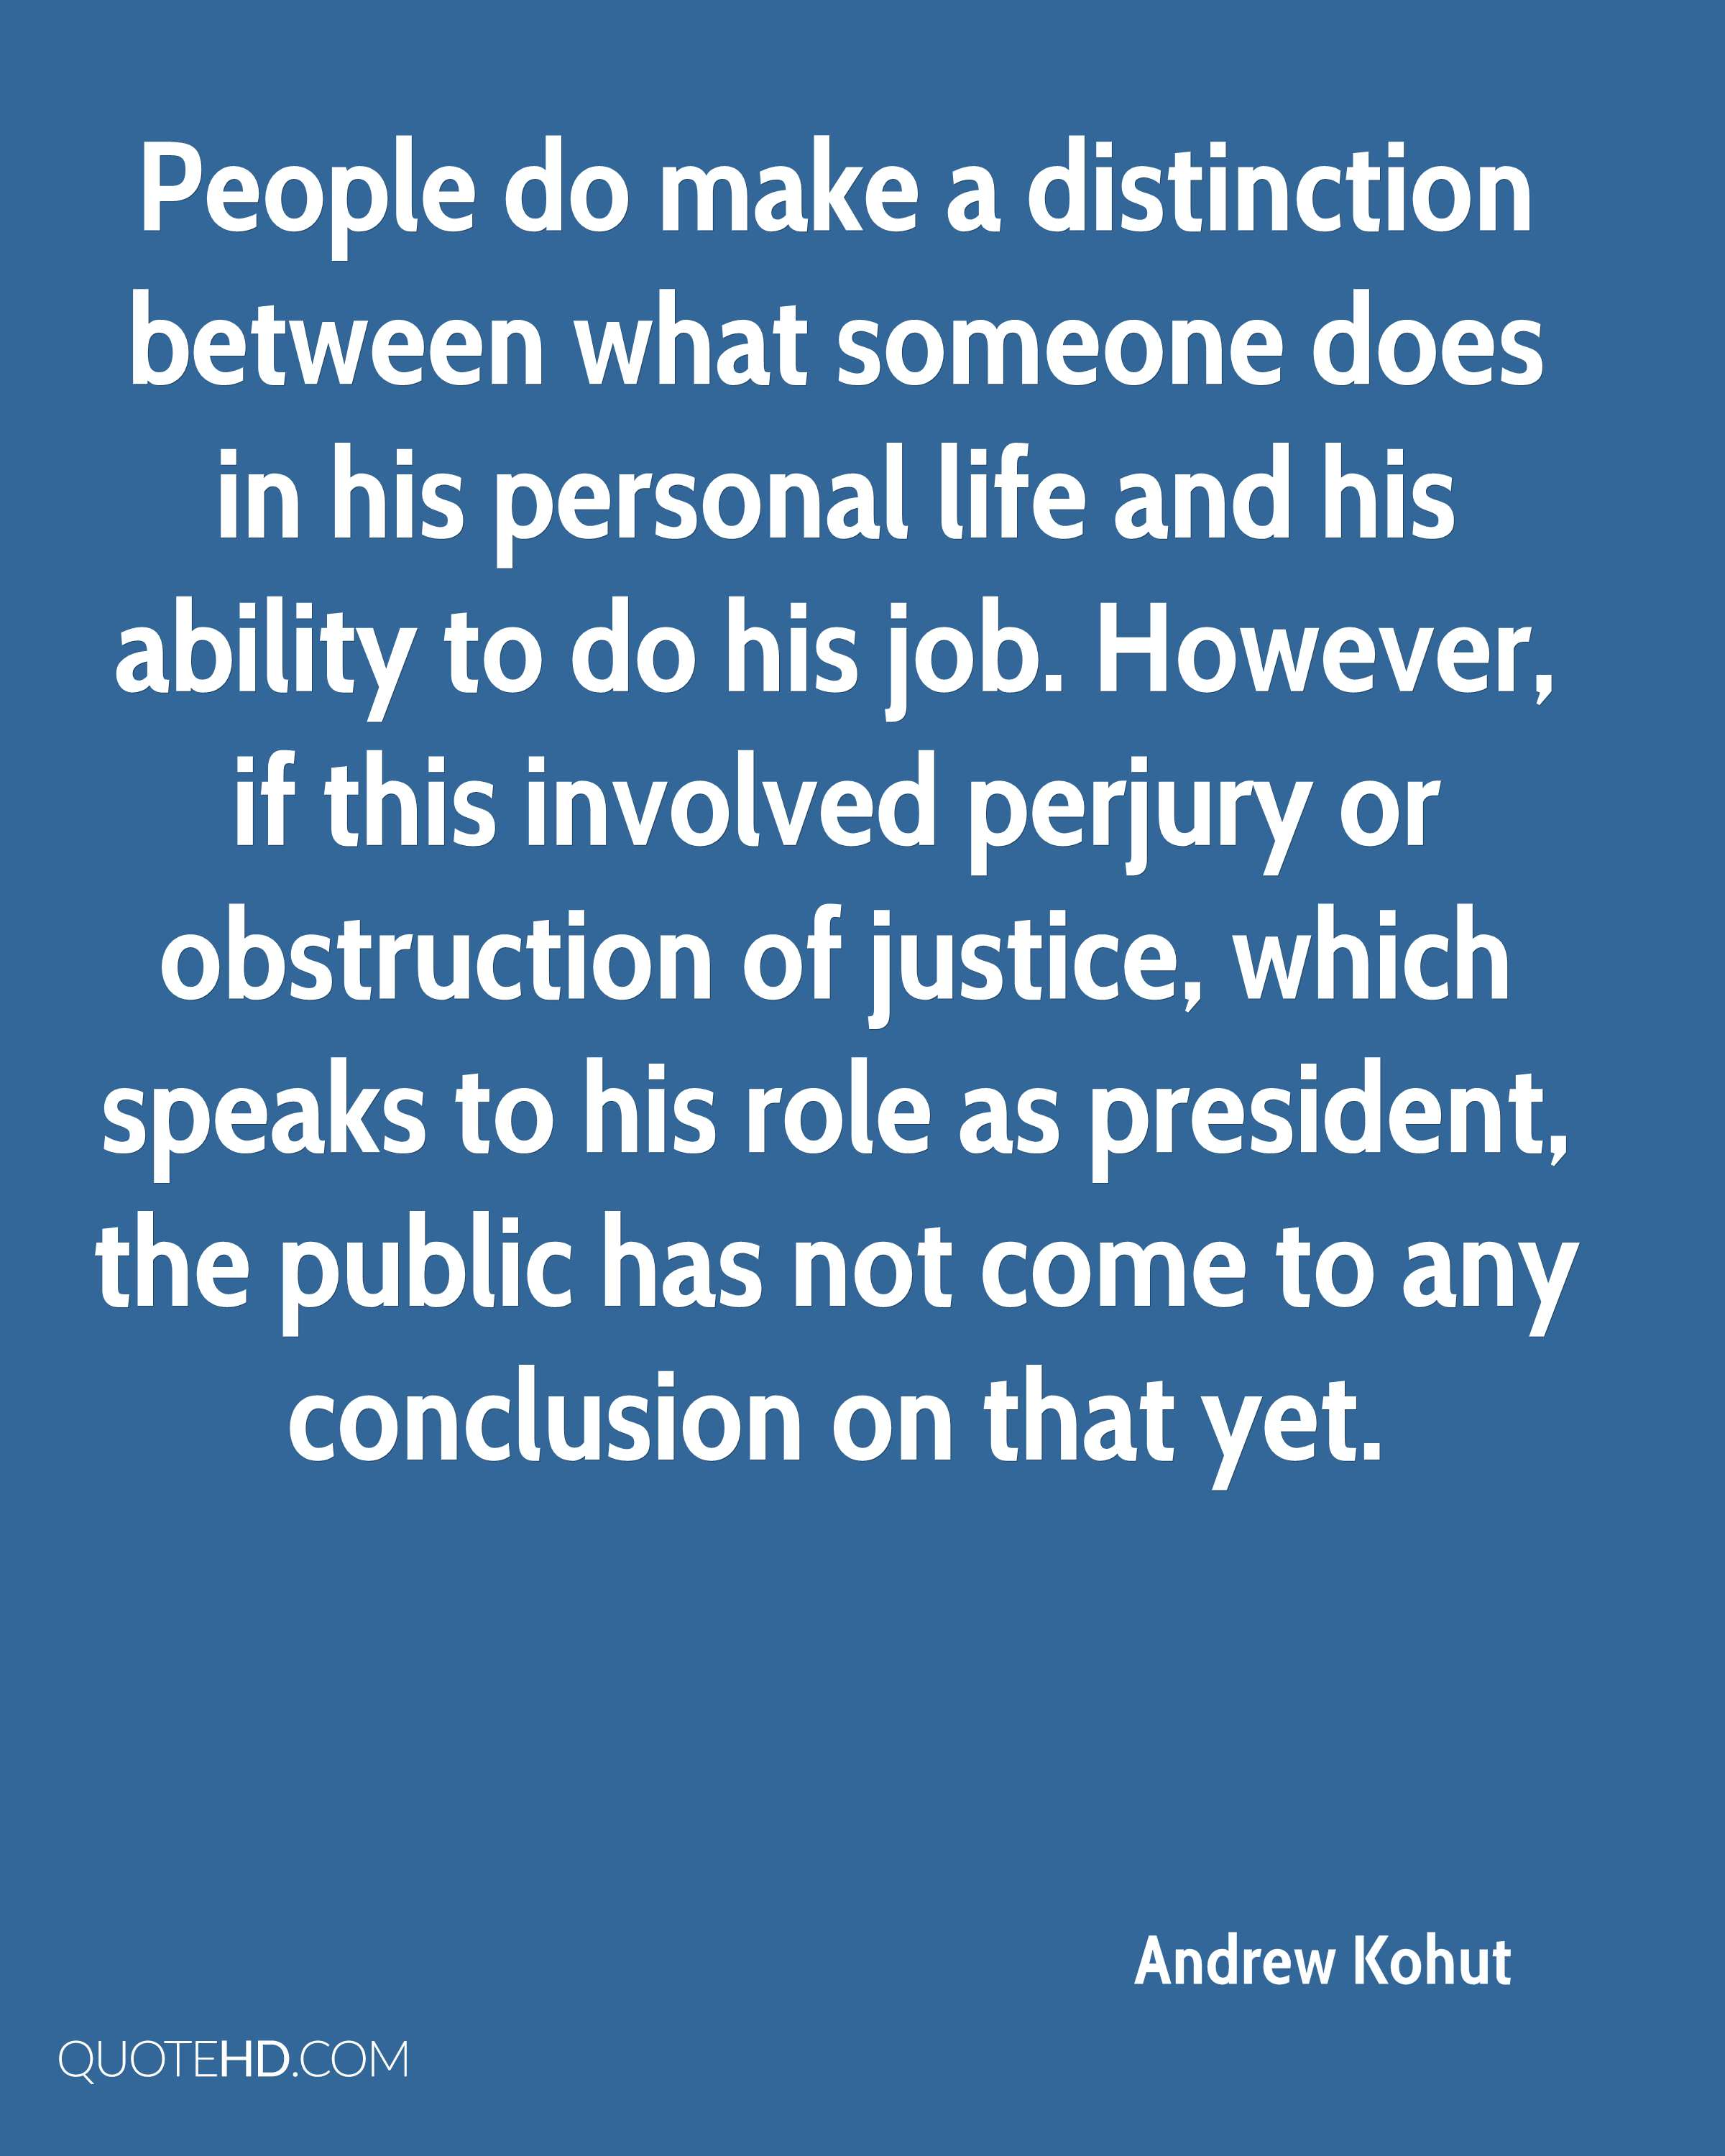 People do make a distinction between what someone does in his personal life and his ability to do his job. However, if this involved perjury or obstruction of justice, which speaks to his role as president, the public has not come to any conclusion on that yet.